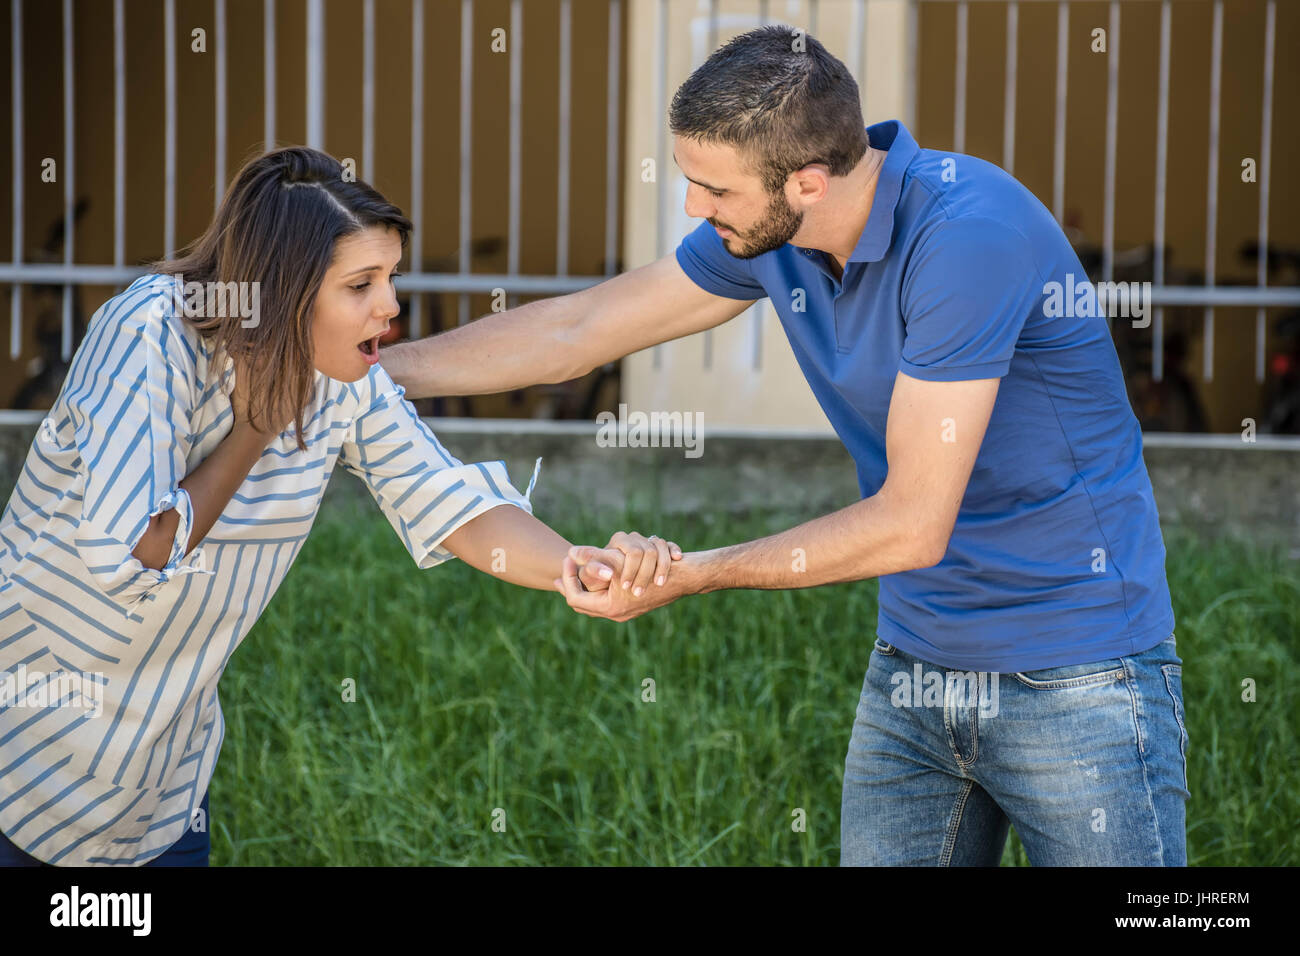 guy making the heimlich maneuver to a girl while she's choking - Stock Image